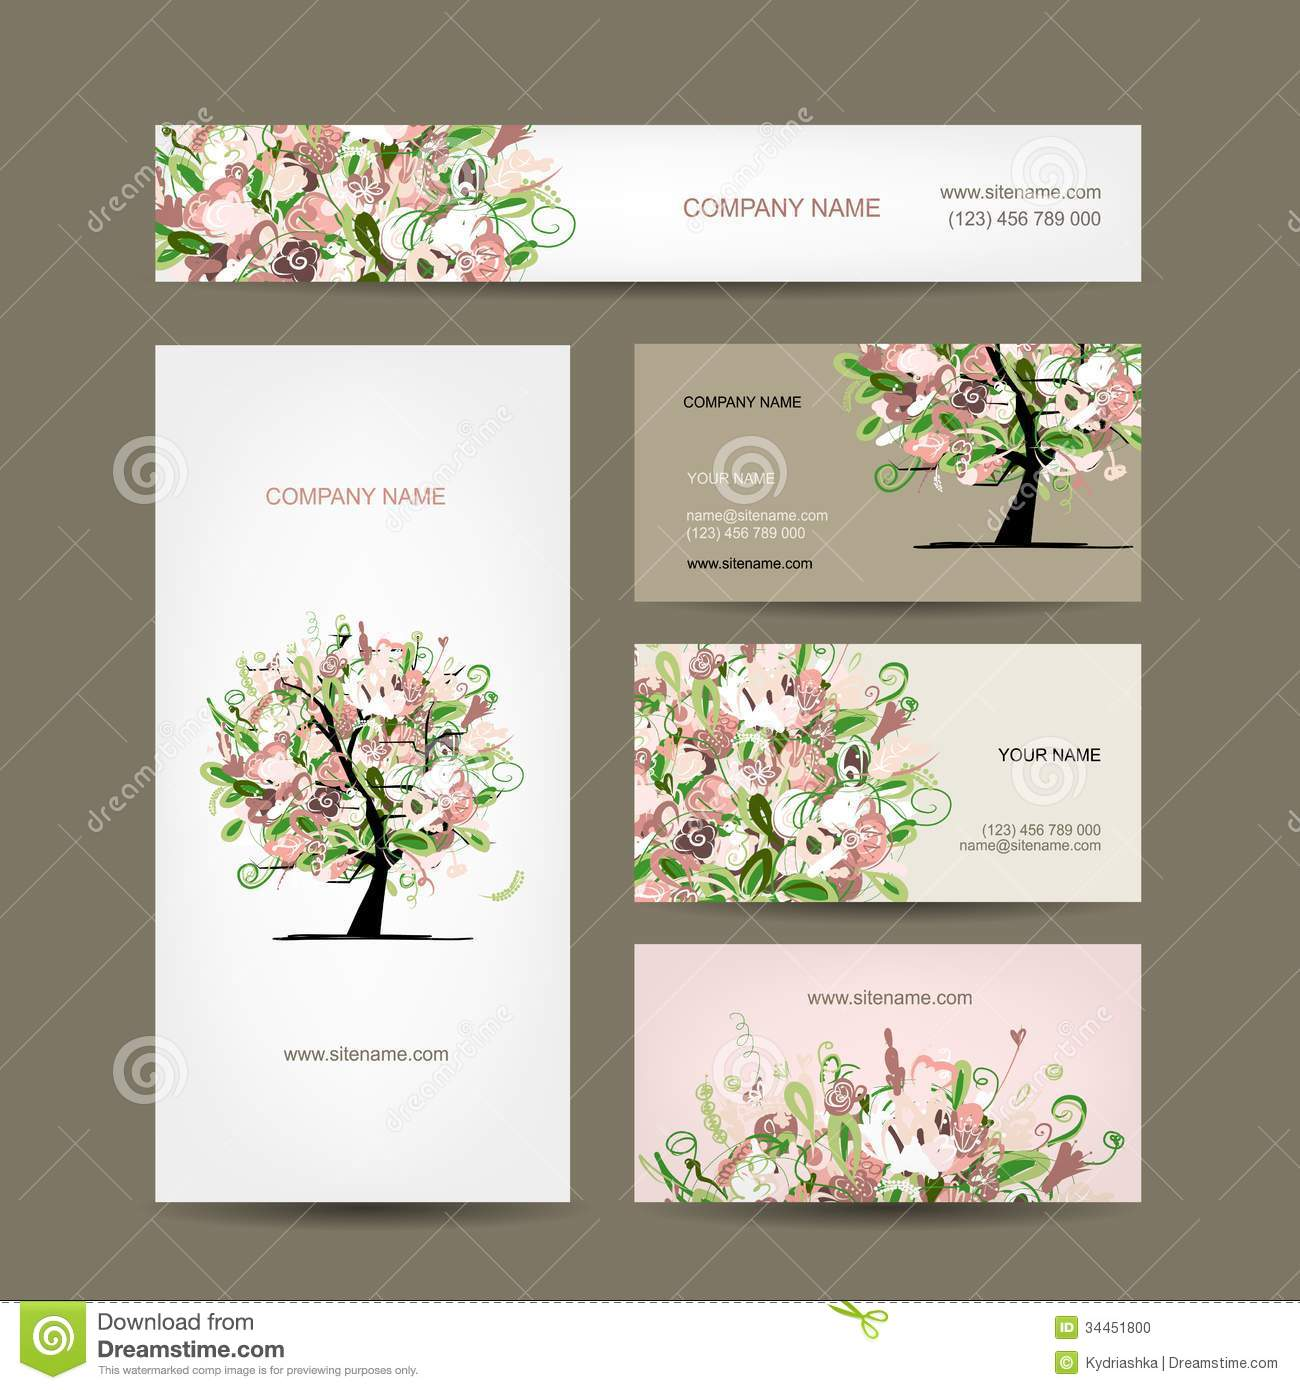 Business Cards Design With Floral Tree Sketch Stock Vector - Image ...